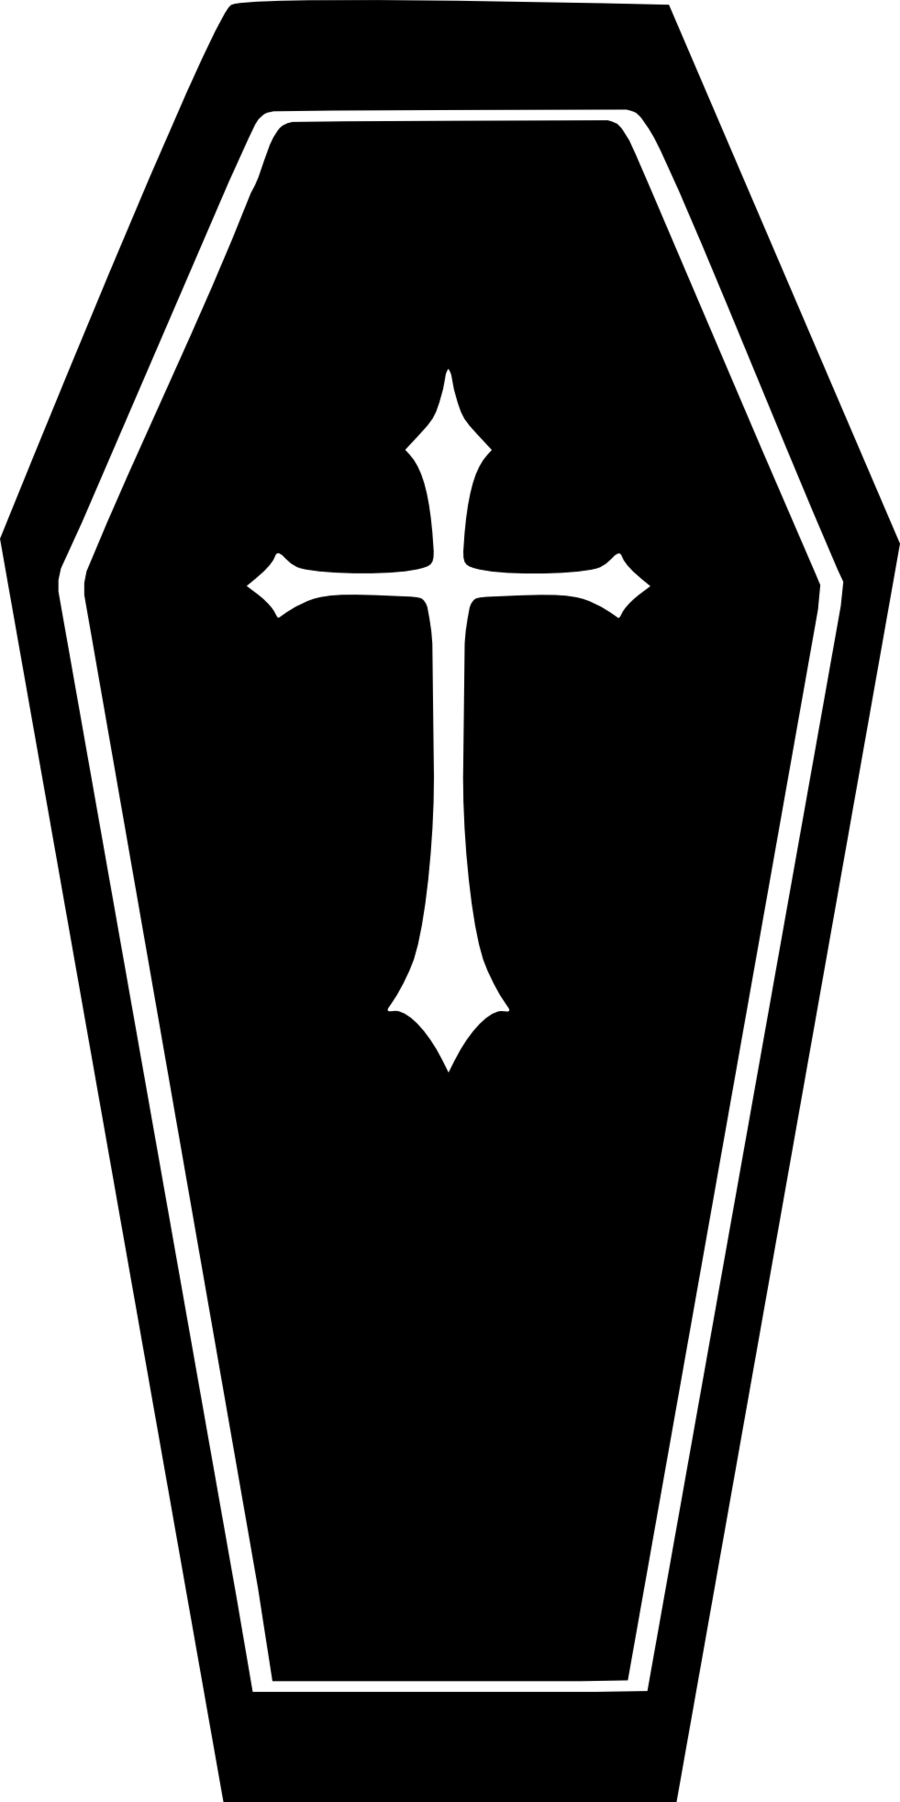 Coffin clipart black and white, Coffin black and white.